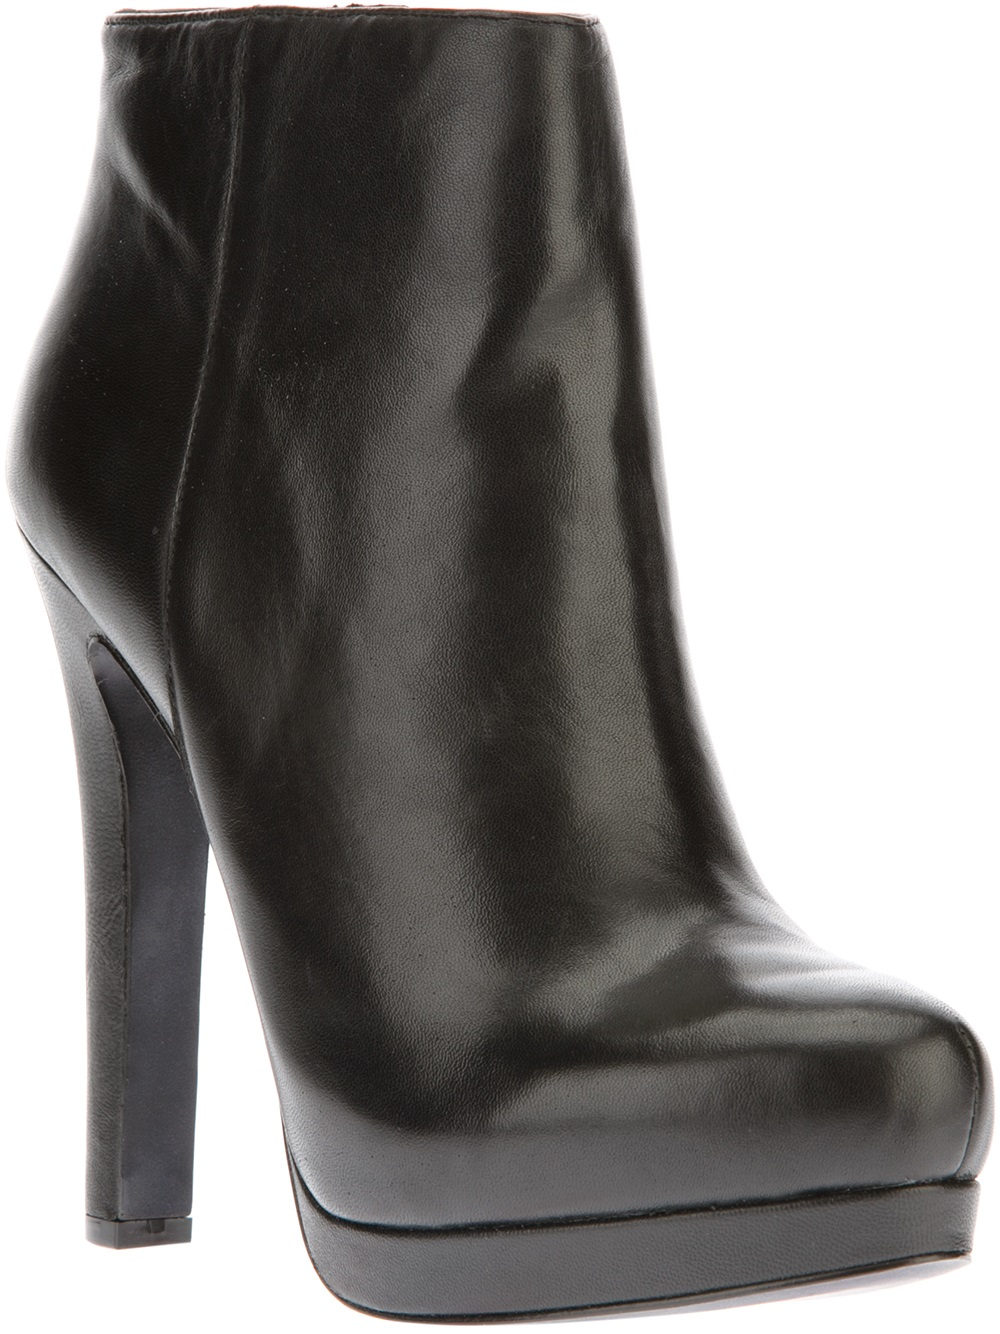 Ash High Heel Ankle Boot in Black | Lyst